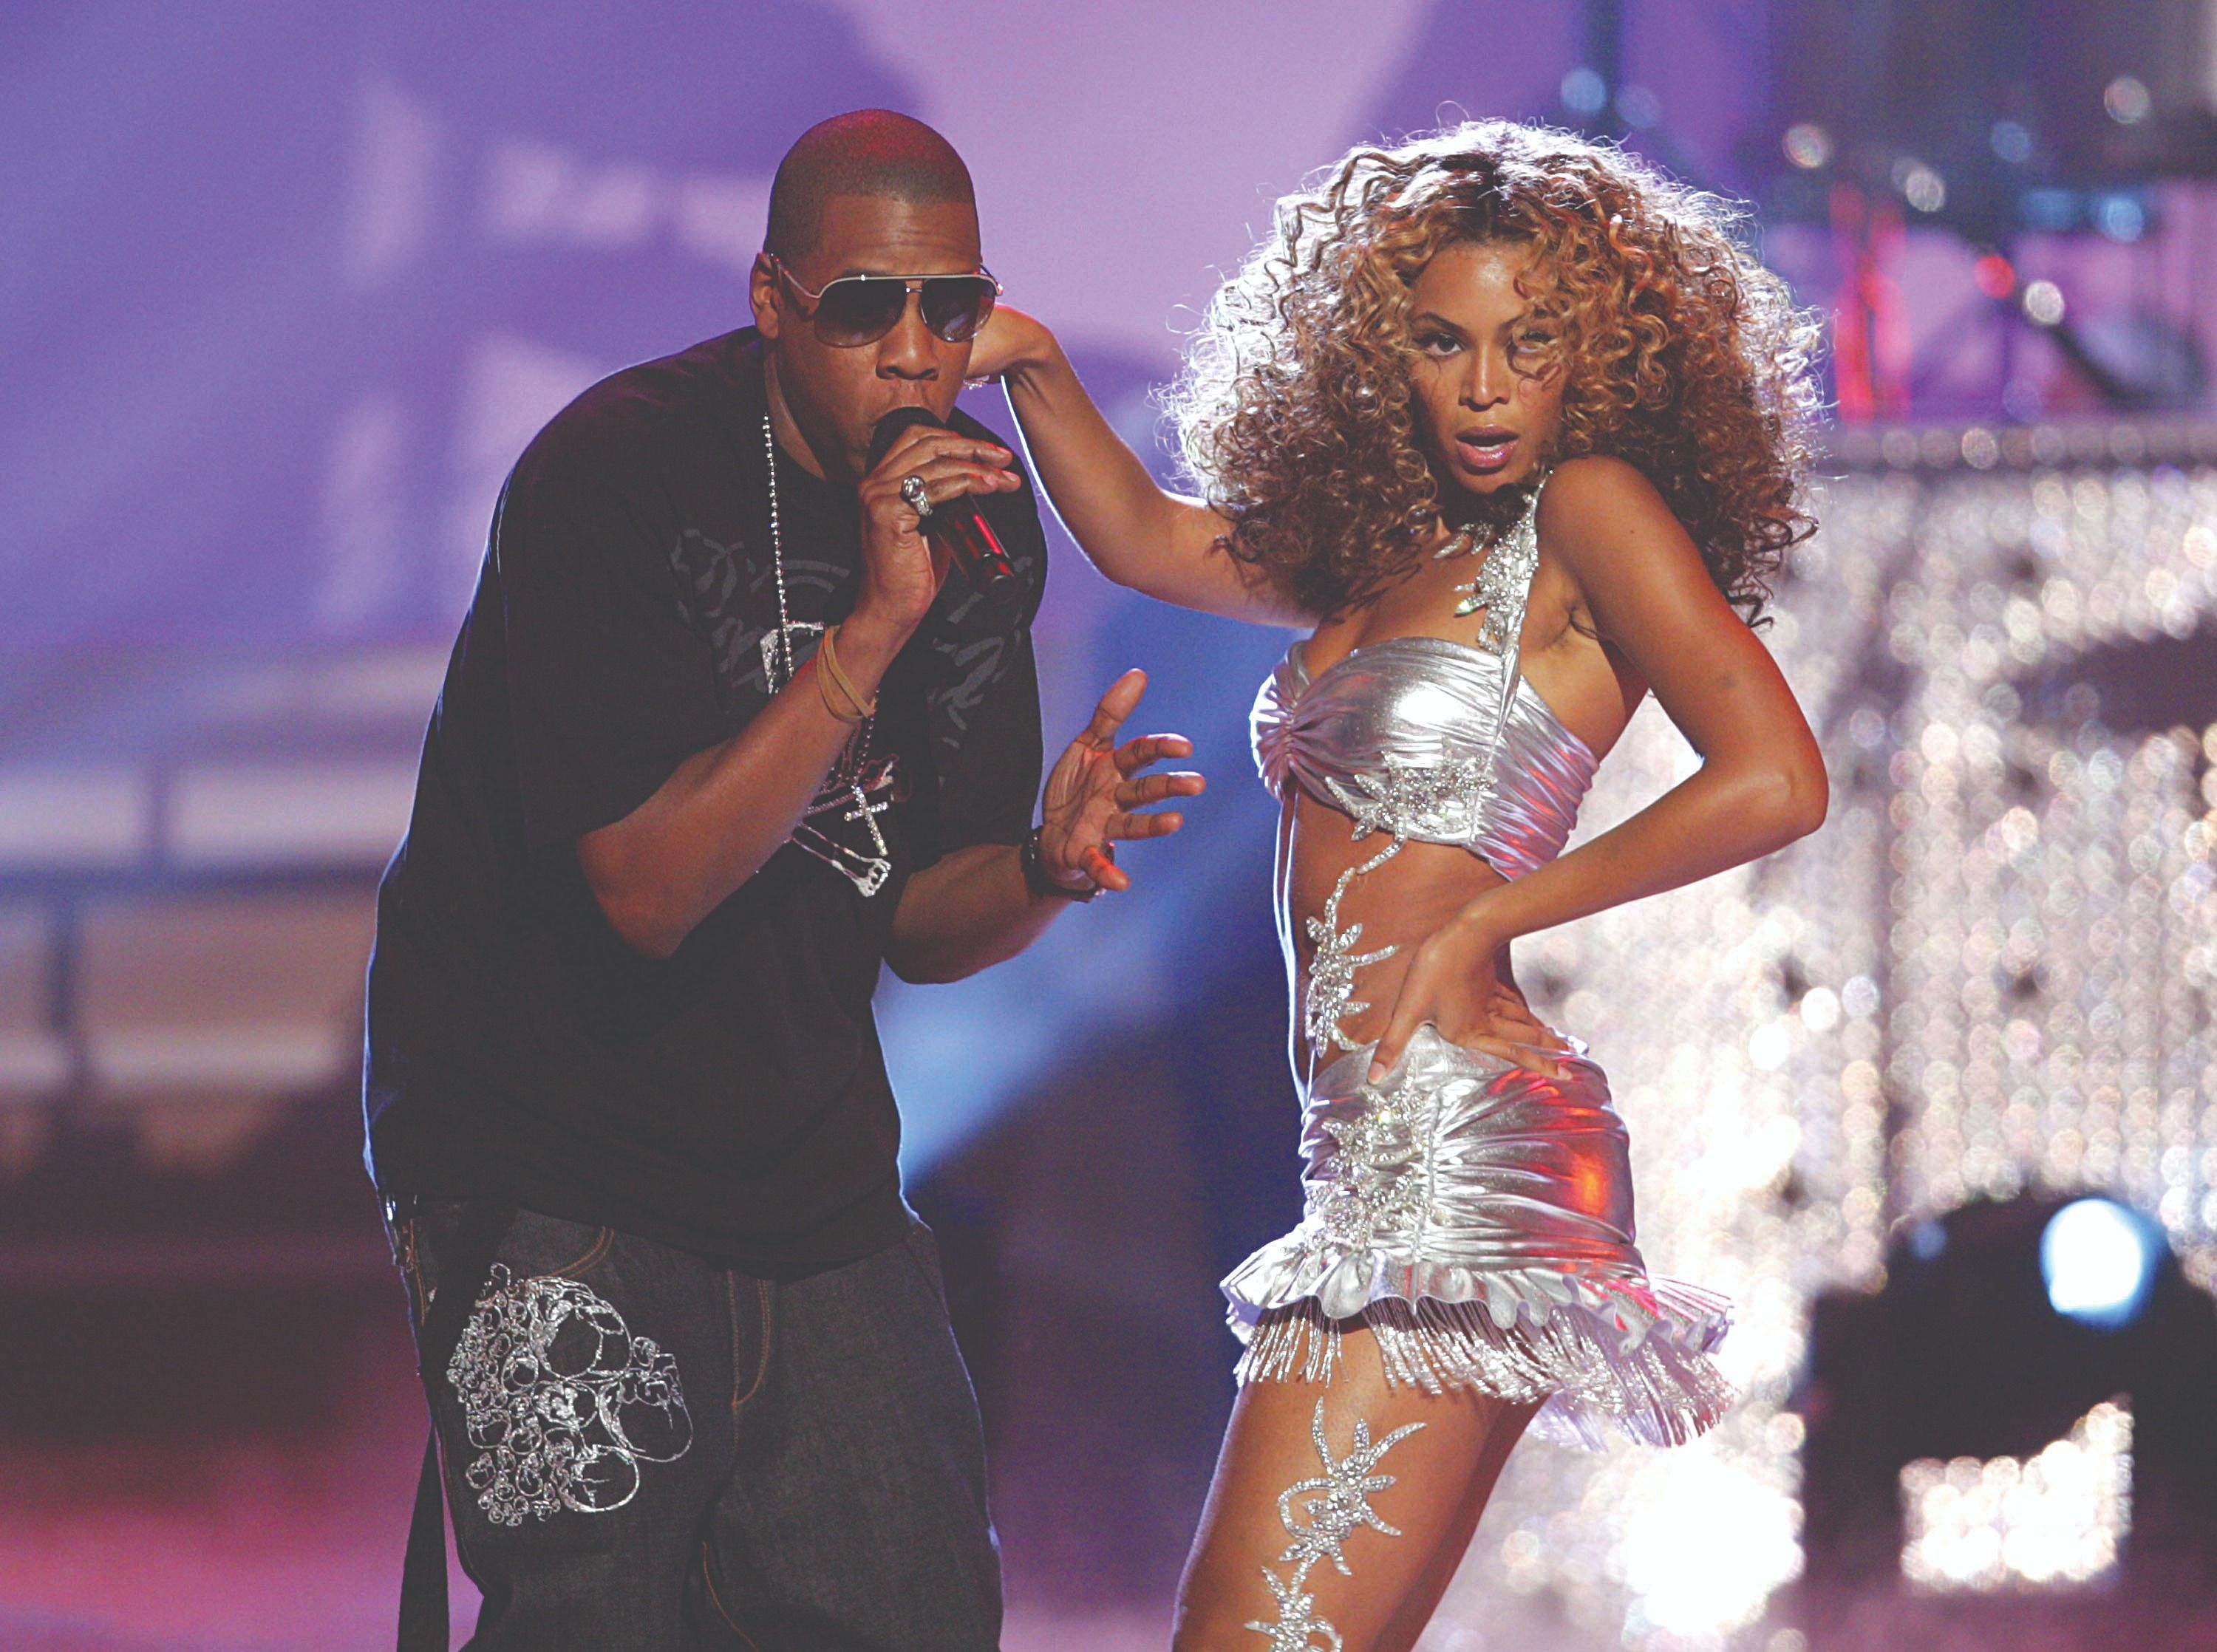 Jay-Z and Beyoncé Are Recording a Secret Album Together:Report